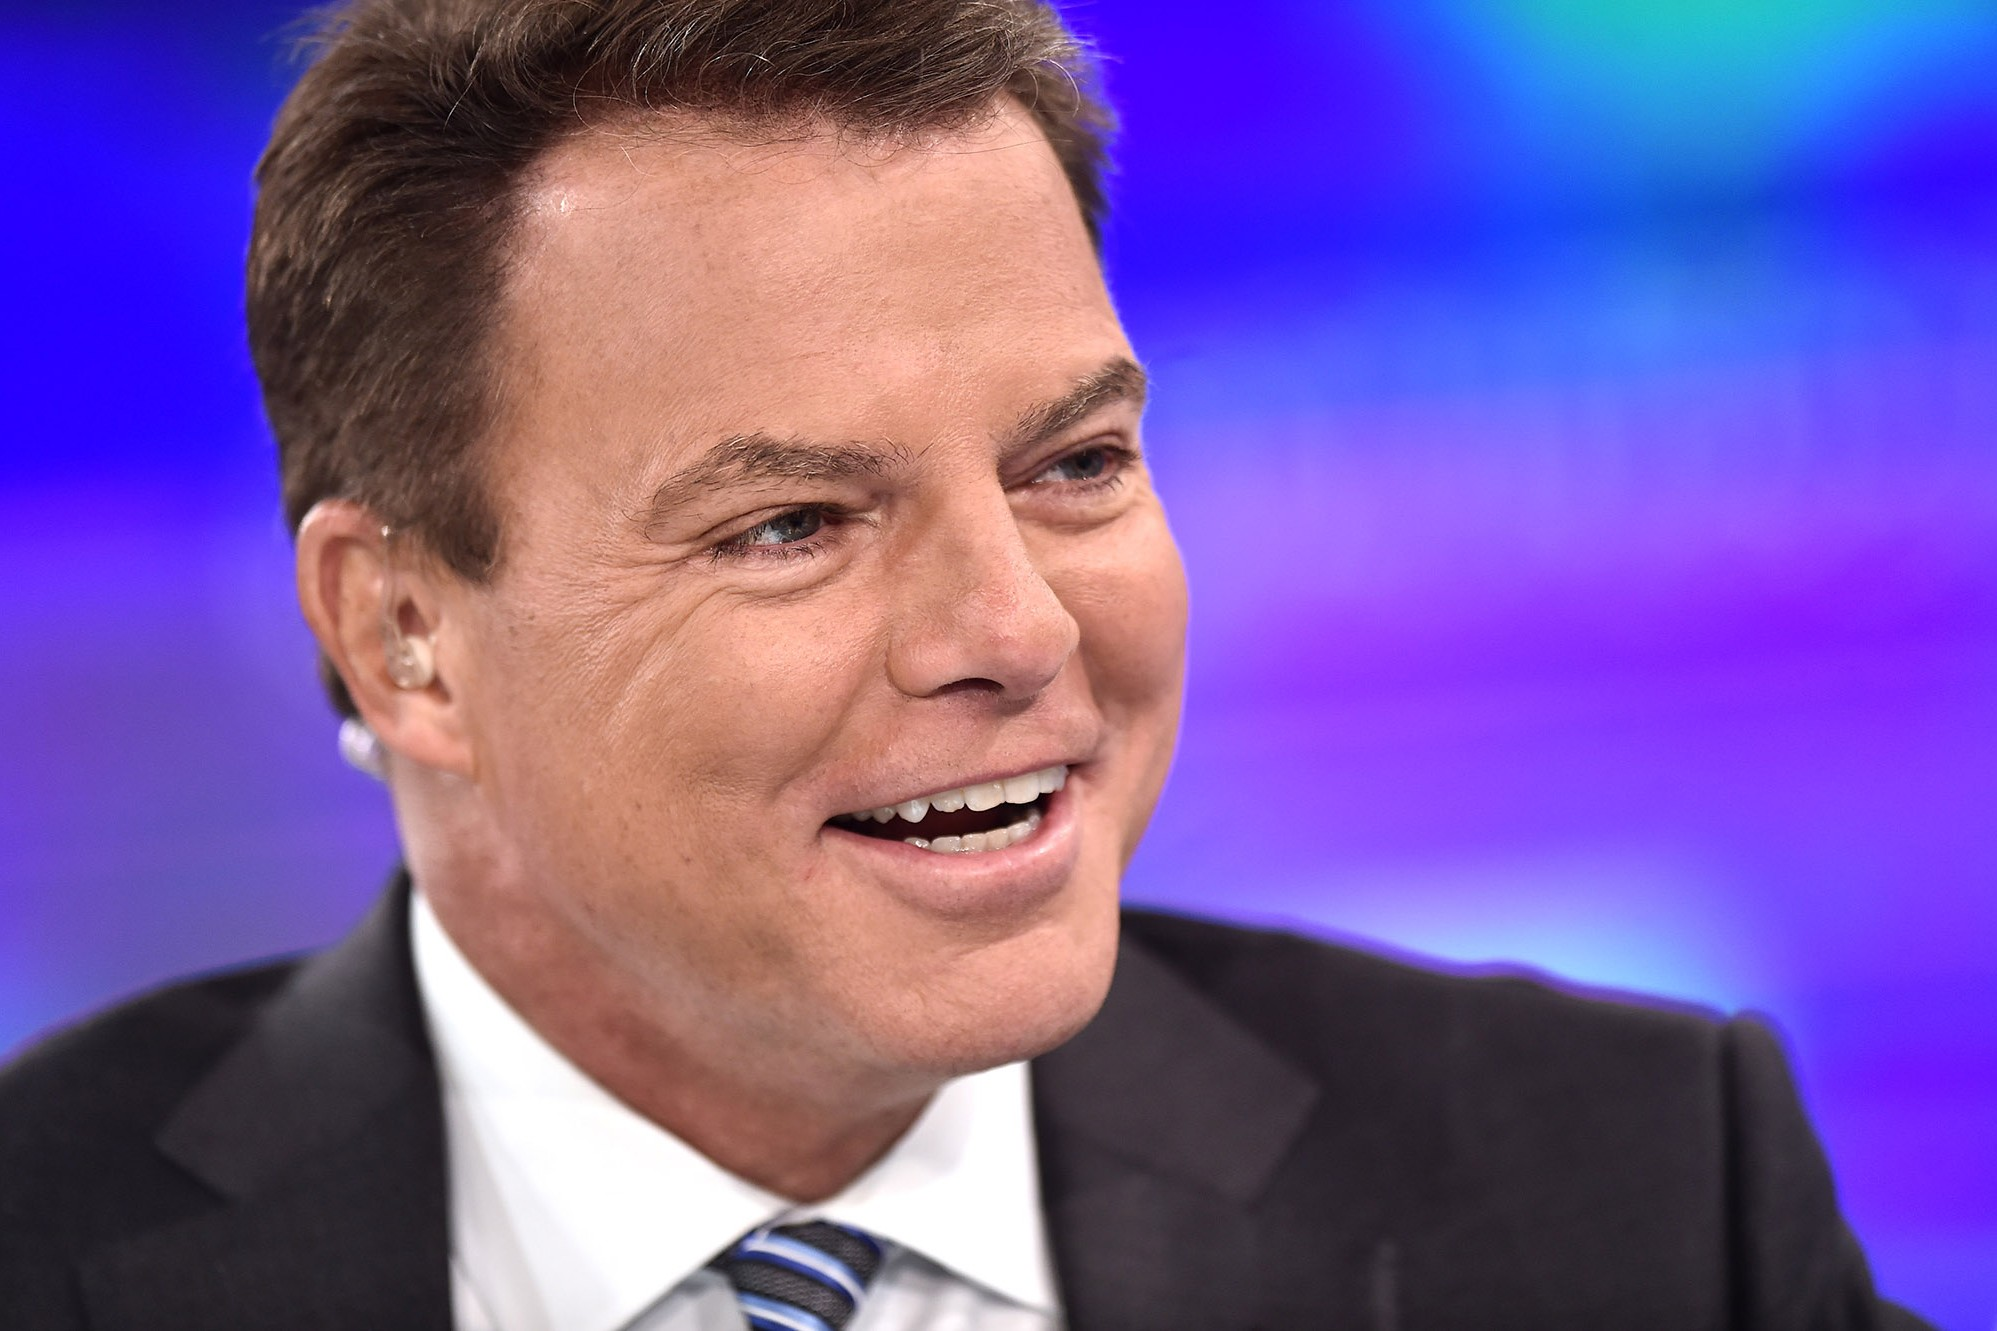 Fox News anchor Shepard 'Shep' Smith abruptly steps down